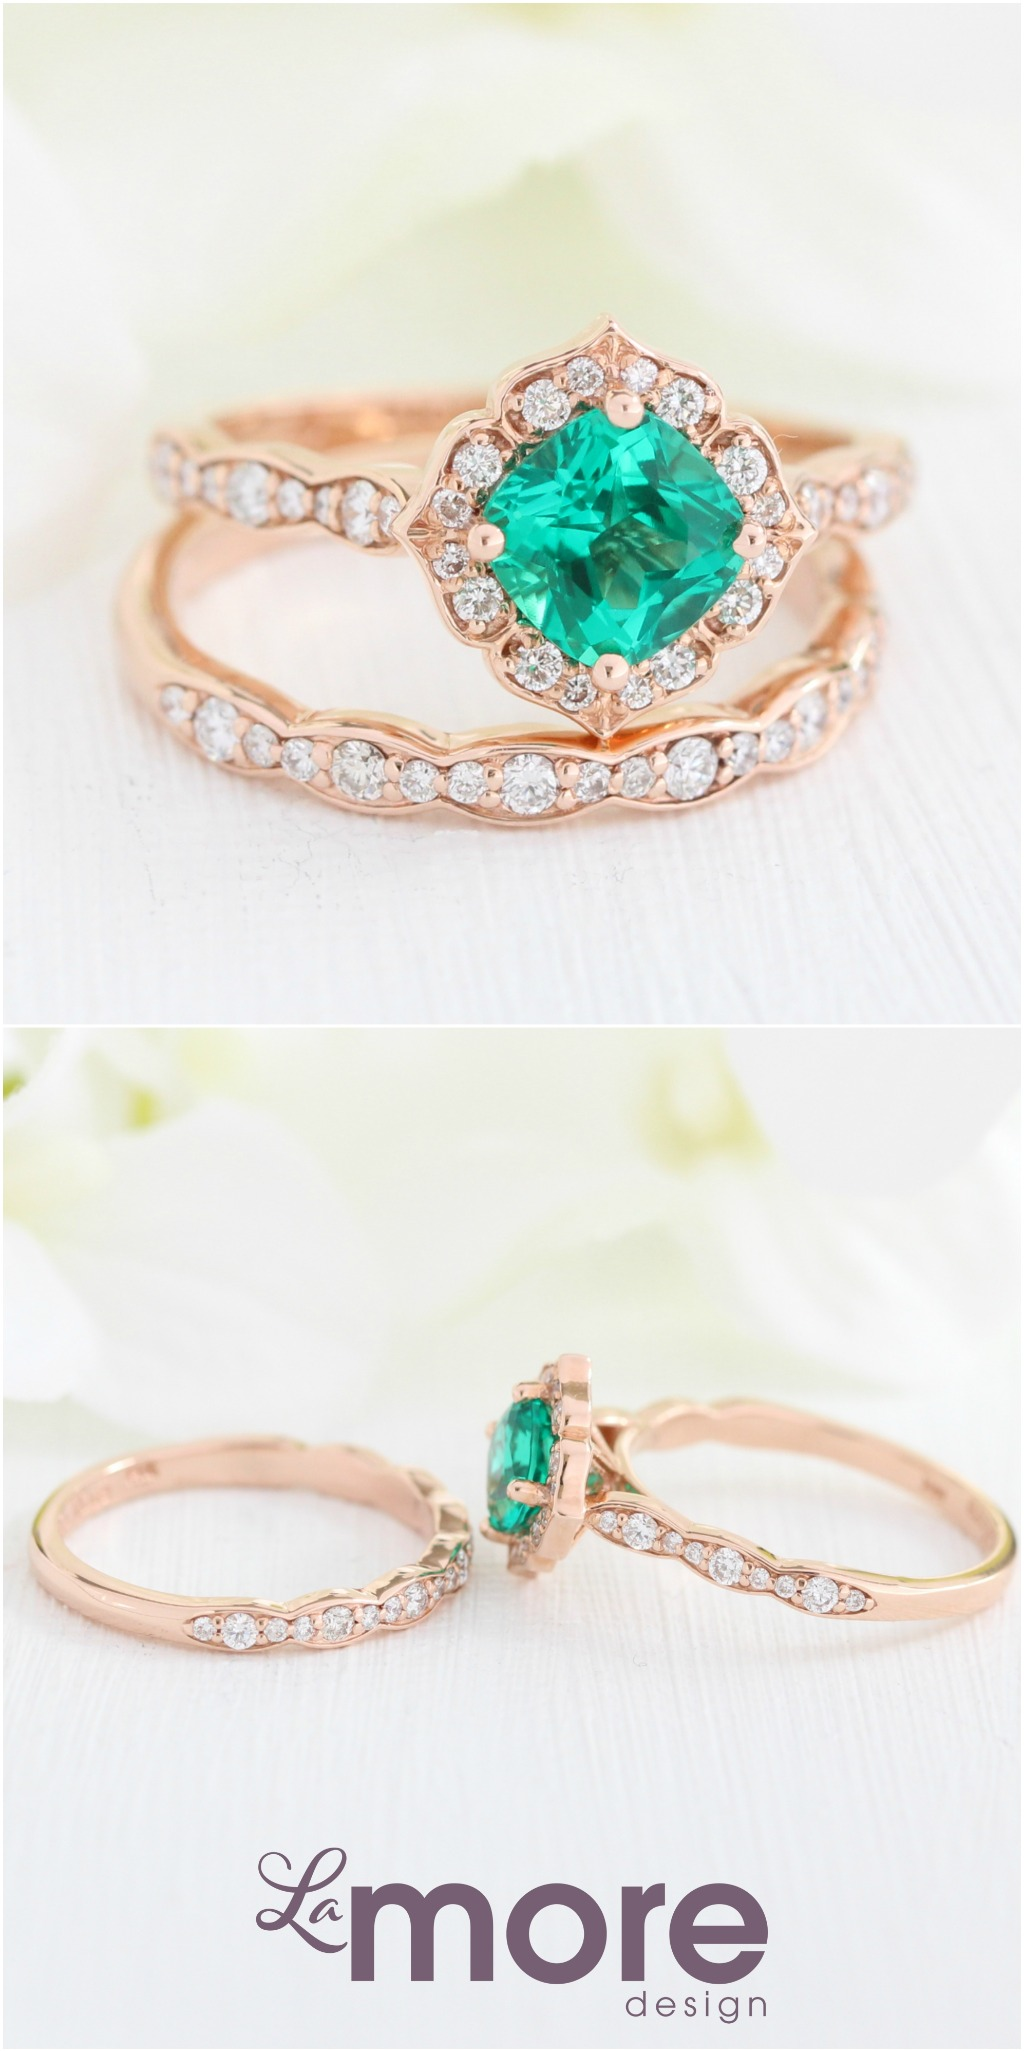 Intricate yet unique emerald bridal ring set features a Mini Vintage Floral Engagement Ring with a 6x6mm cushion cut conflict free